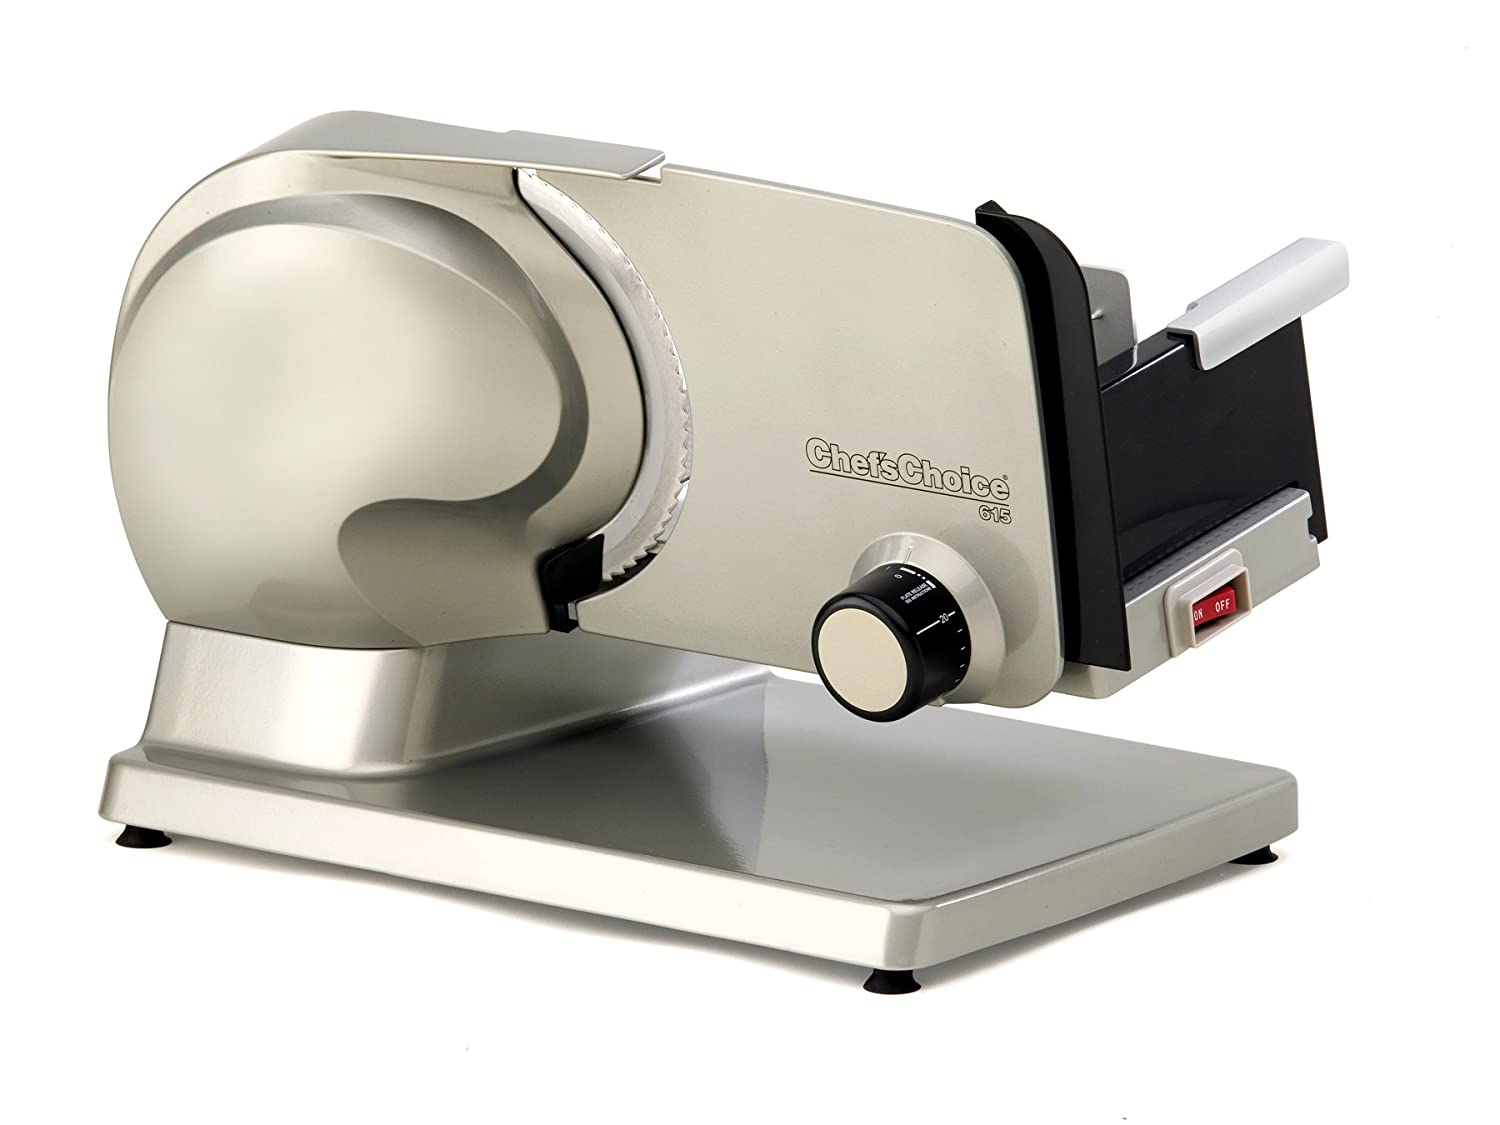 "Chef'sChoice 615A Electric Meat Slicer Features Precision Thickness Control and Tilted Food Carriage for Fast and Efficient Slicing with Removable Blade for Easy Clean 7"" Stainless Steel"